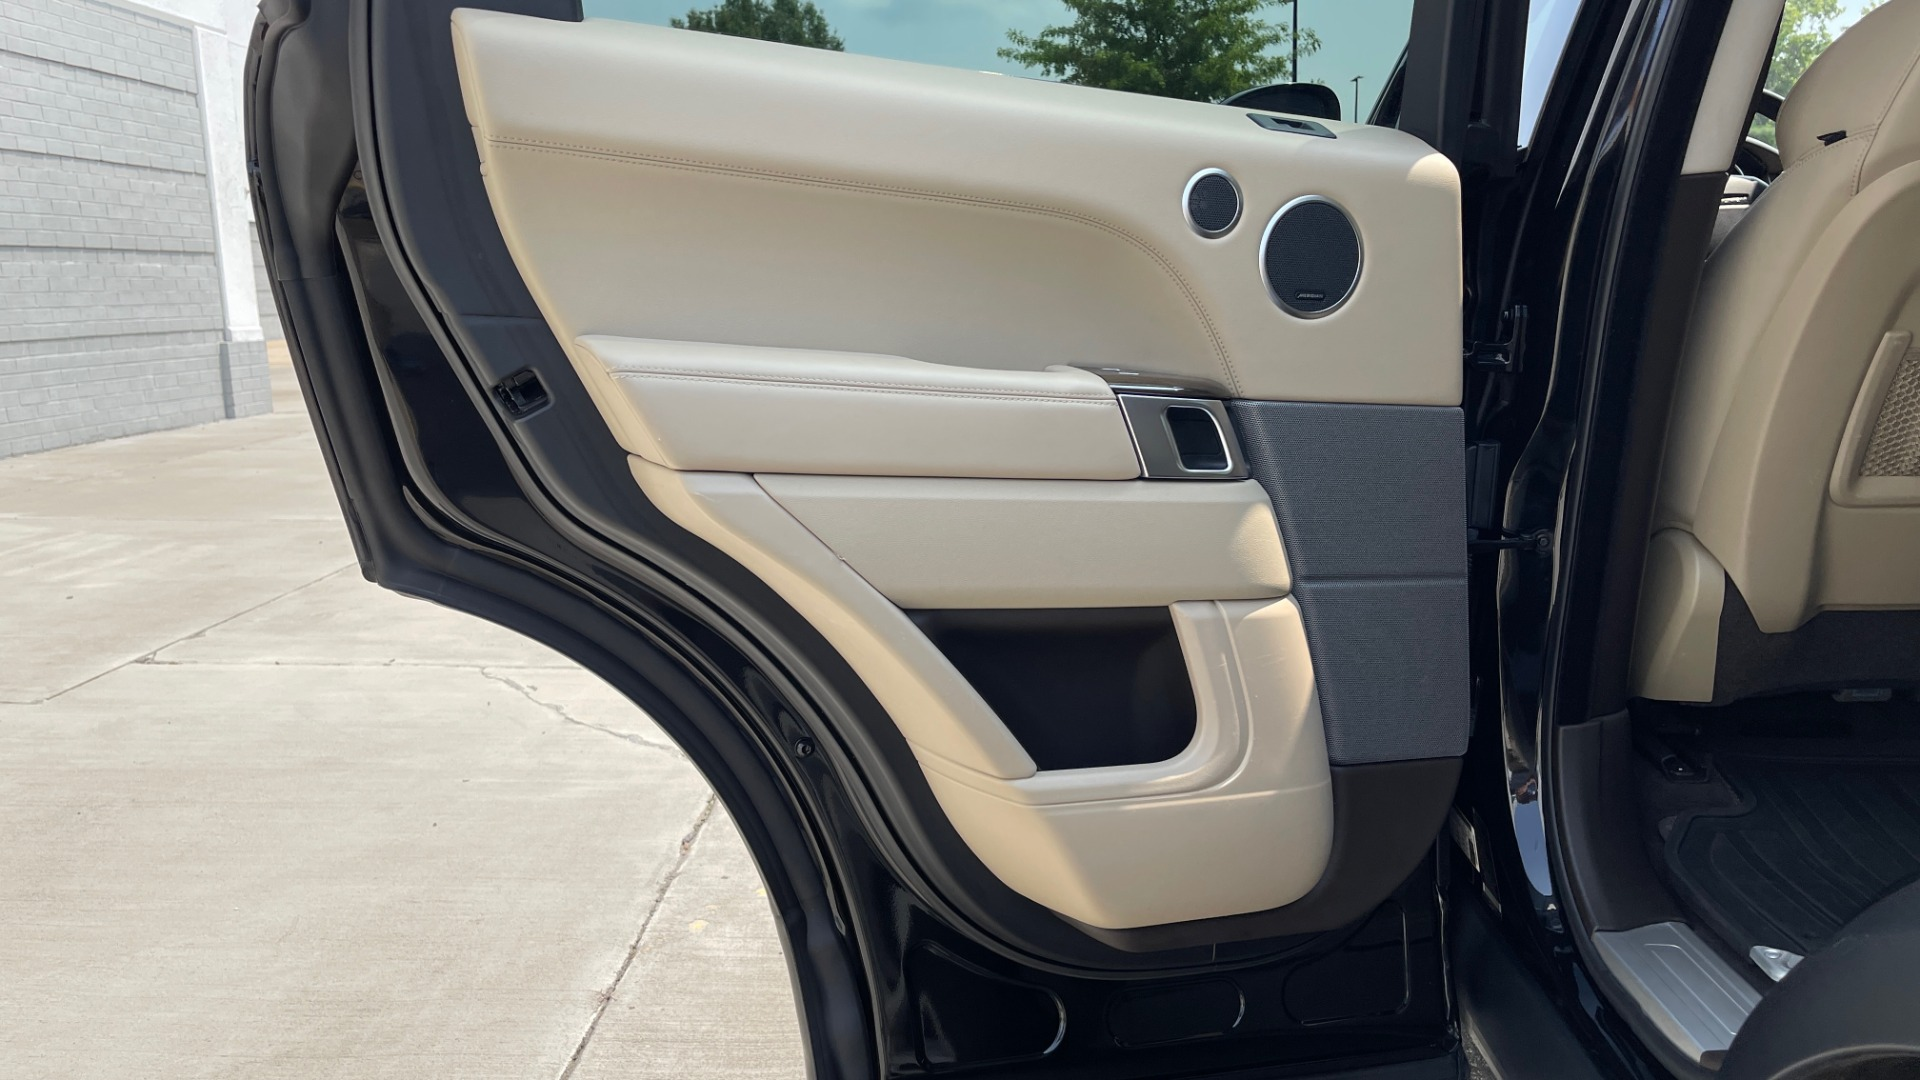 Used 2016 Land Rover RANGE ROVER SPORT V6 HSE / NAV / PANO-ROOF / MERIDIAN / CONSOLE COOLER / CAMERAS for sale $40,995 at Formula Imports in Charlotte NC 28227 51